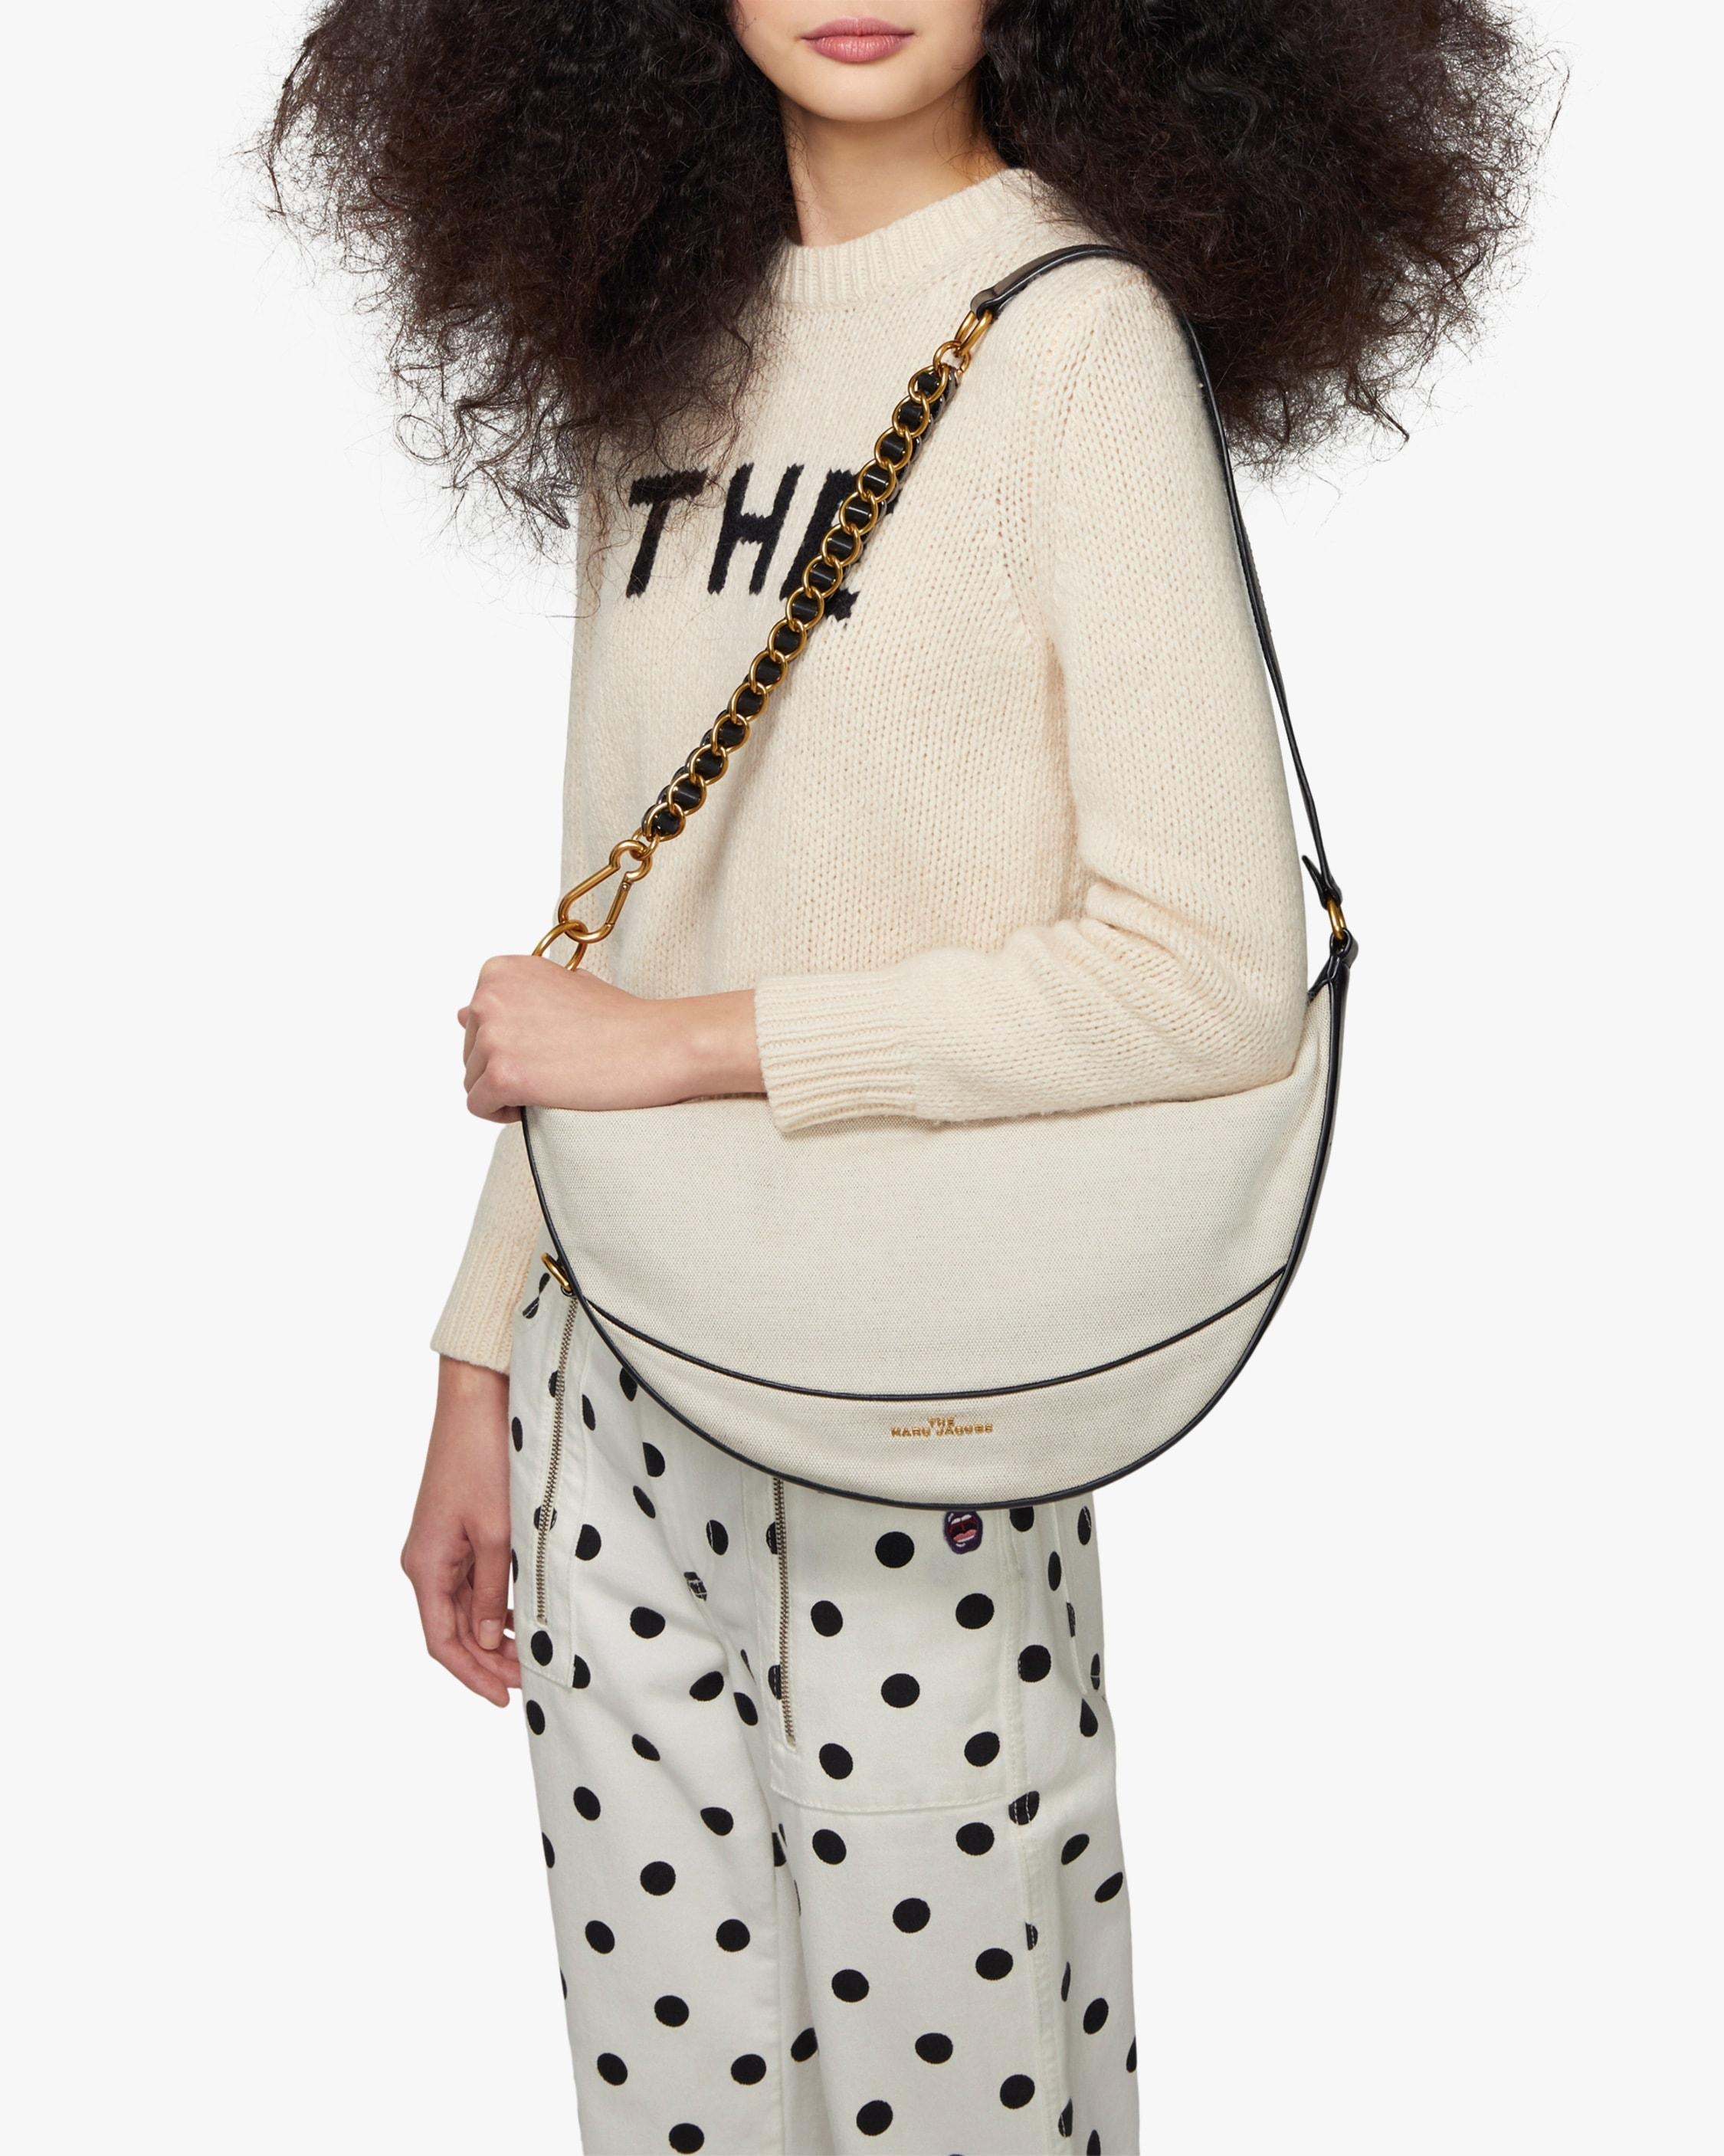 Marc Jacobs Leather The Mini Eclipse Shoulder Bag in Natural - Lyst